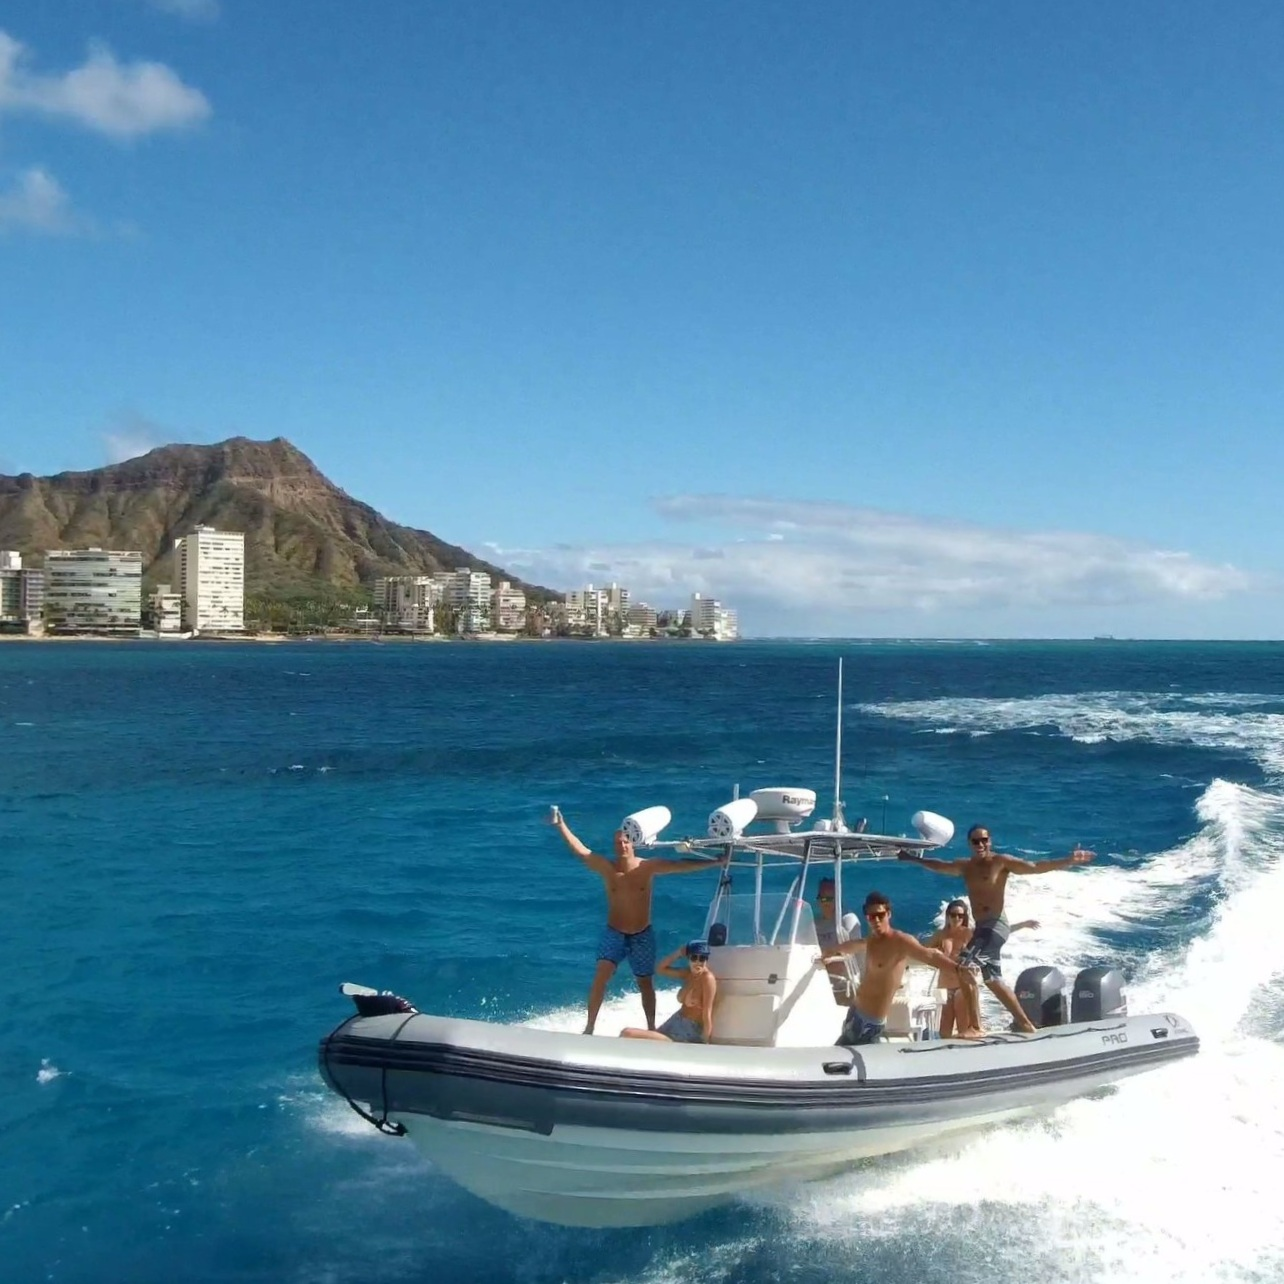 Private Adventure Boat charter in Waikiki at Diamond Head